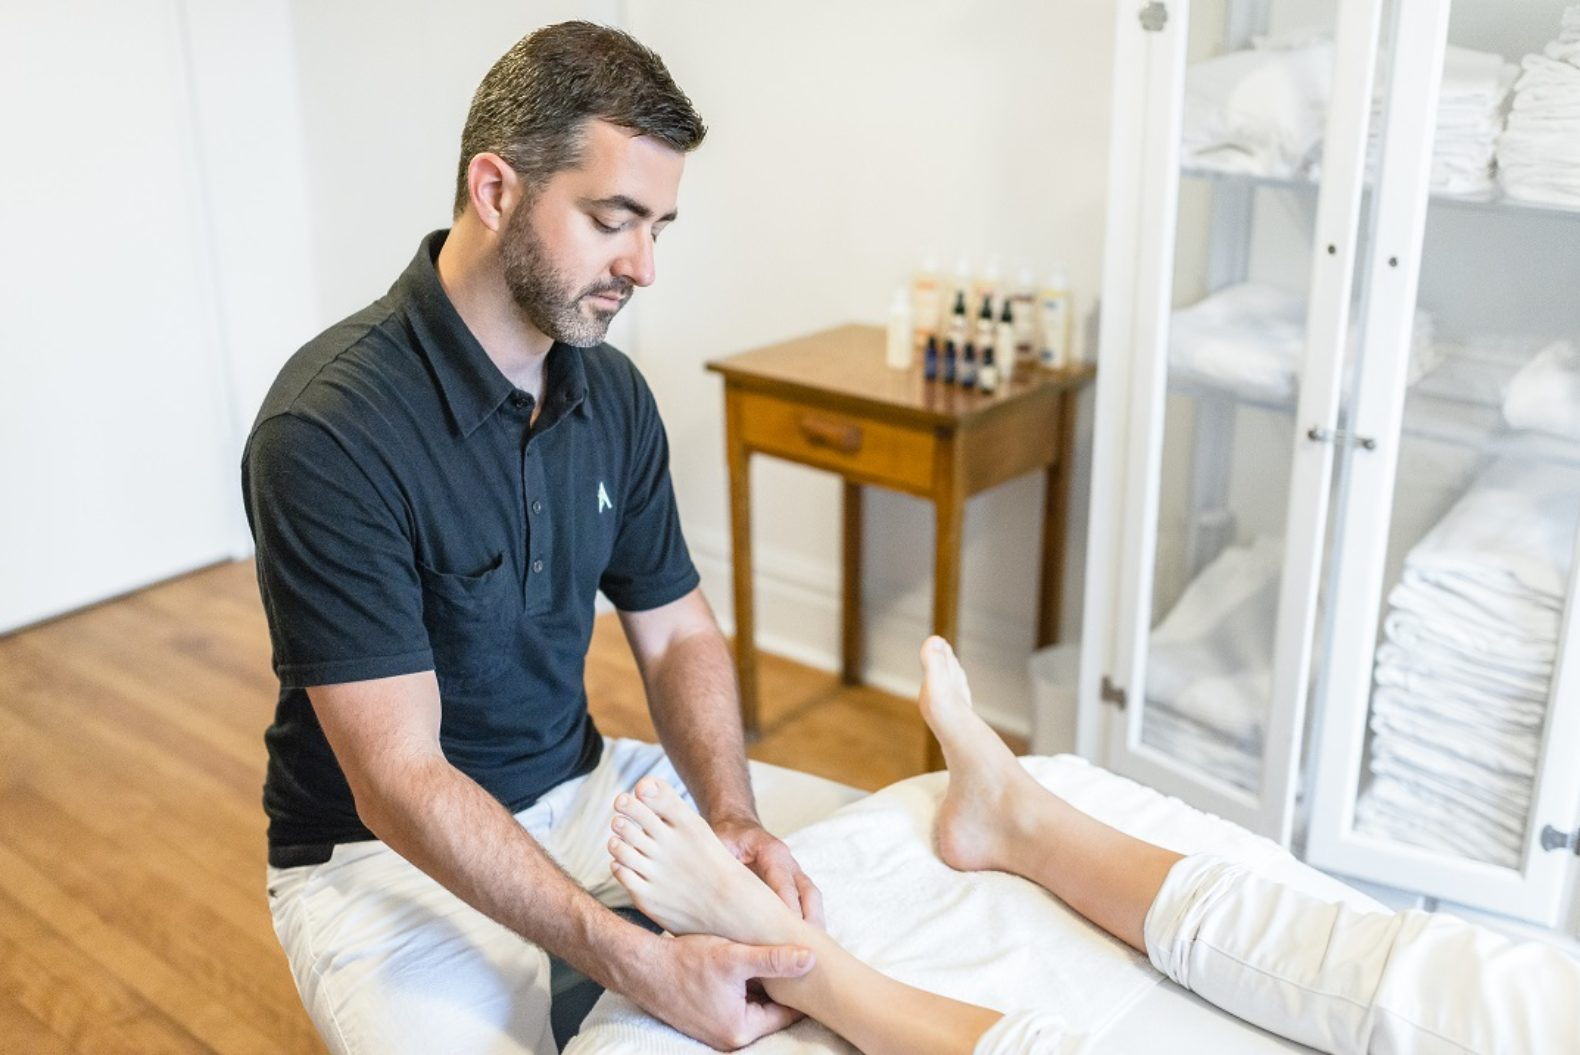 person-foot-massage-reflexology-releaxing-renewing-energy-le-monastère-des-augustines-canada